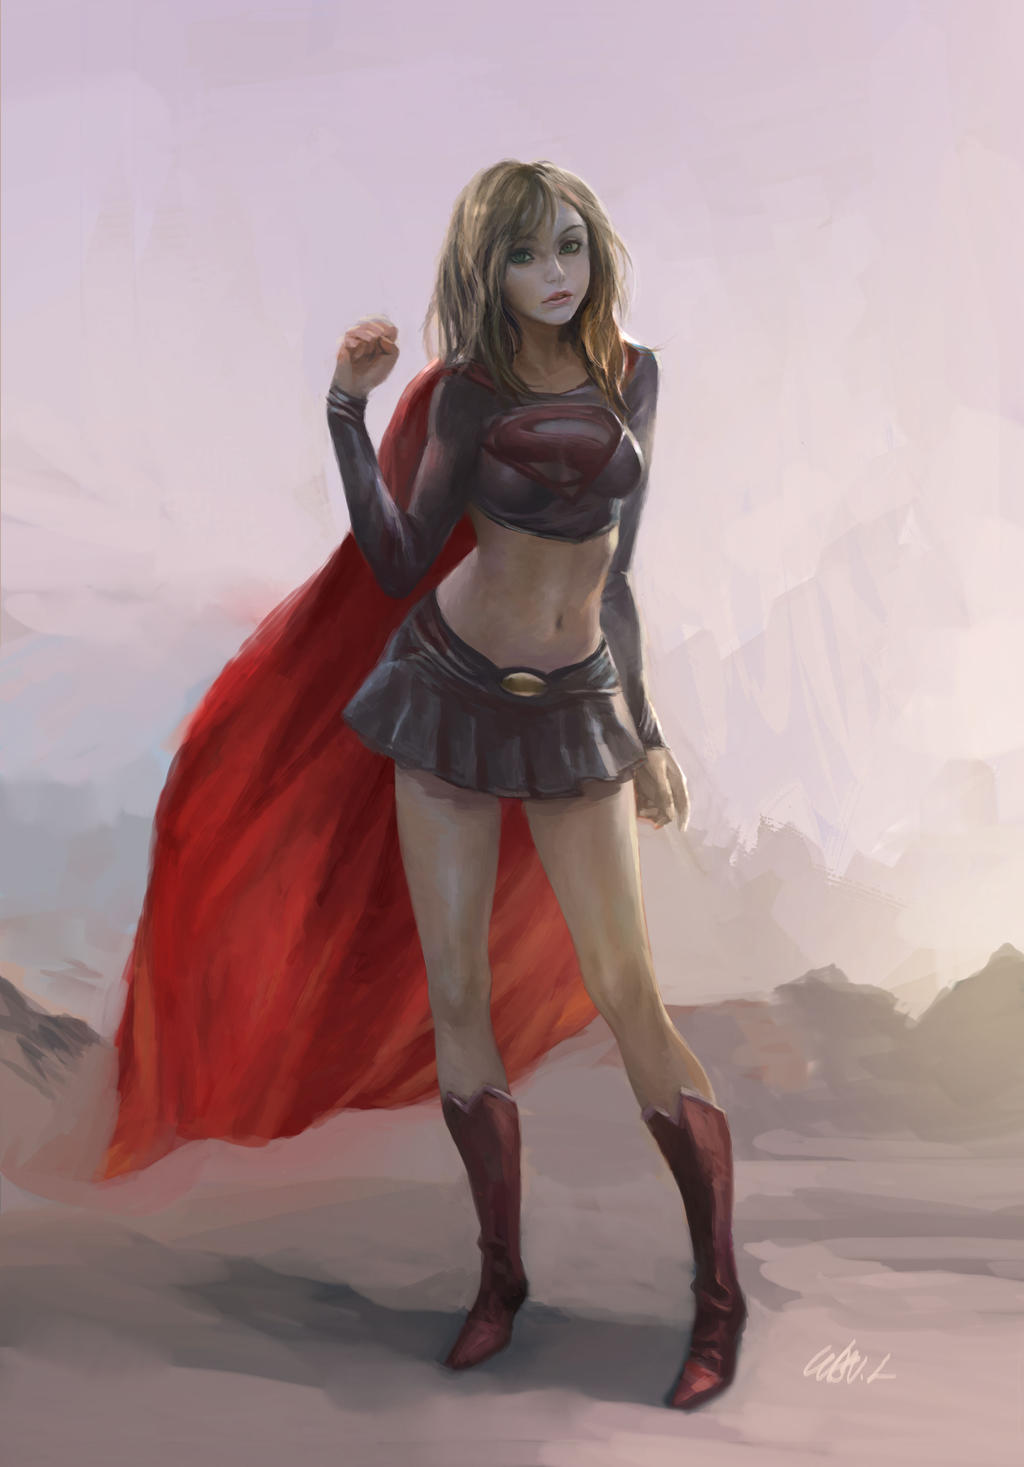 supergirl by hf-zilch